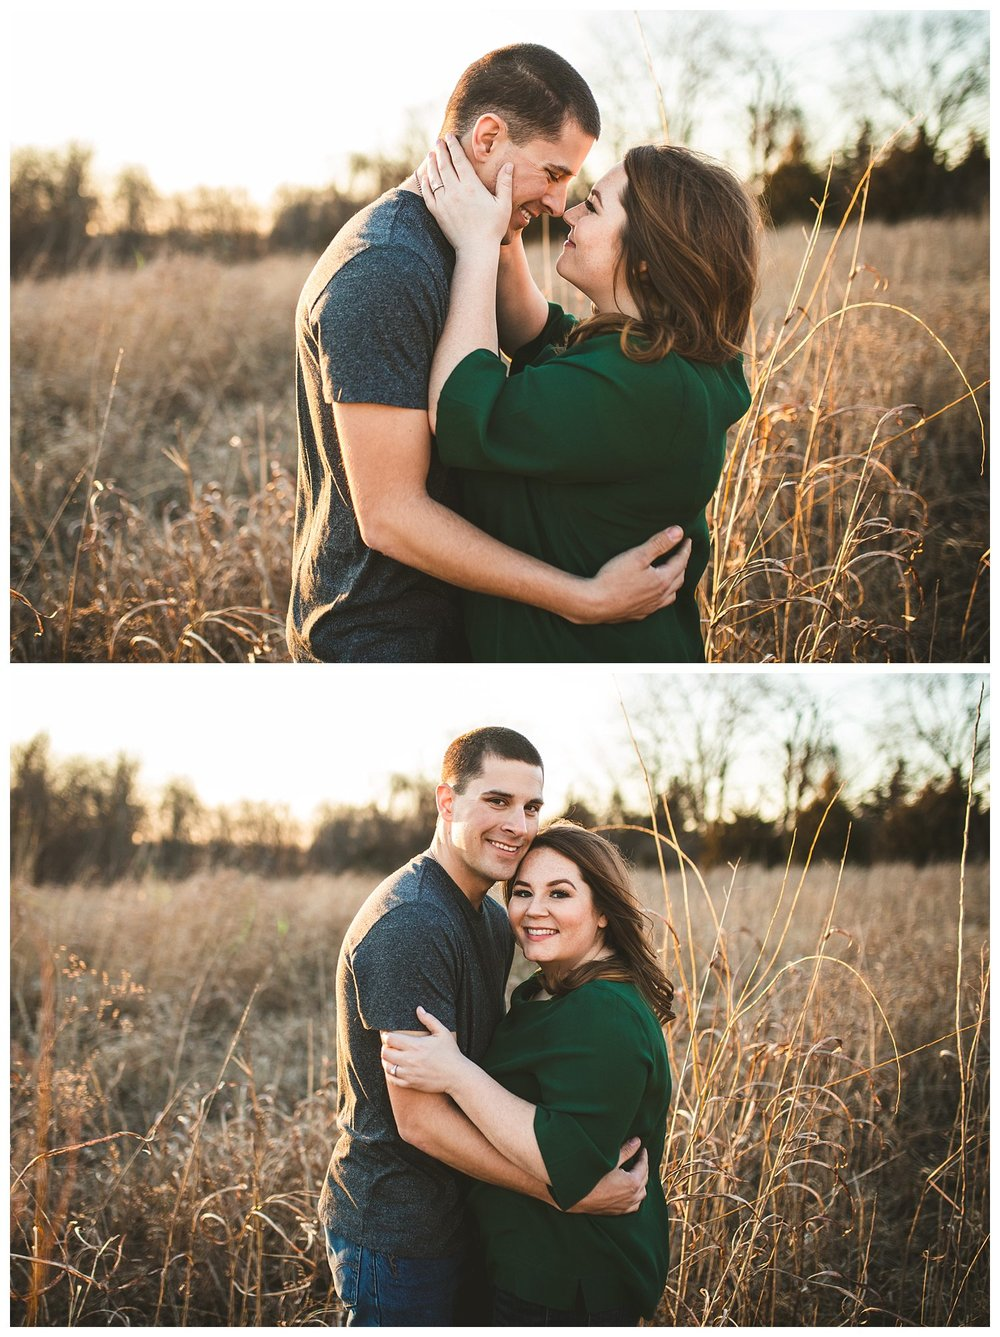 Kelsey_Diane_Photography_T-Bones_Stadium_Kansas_Wandering_Adventourus_Kansas_City_Engagement_0101.jpg